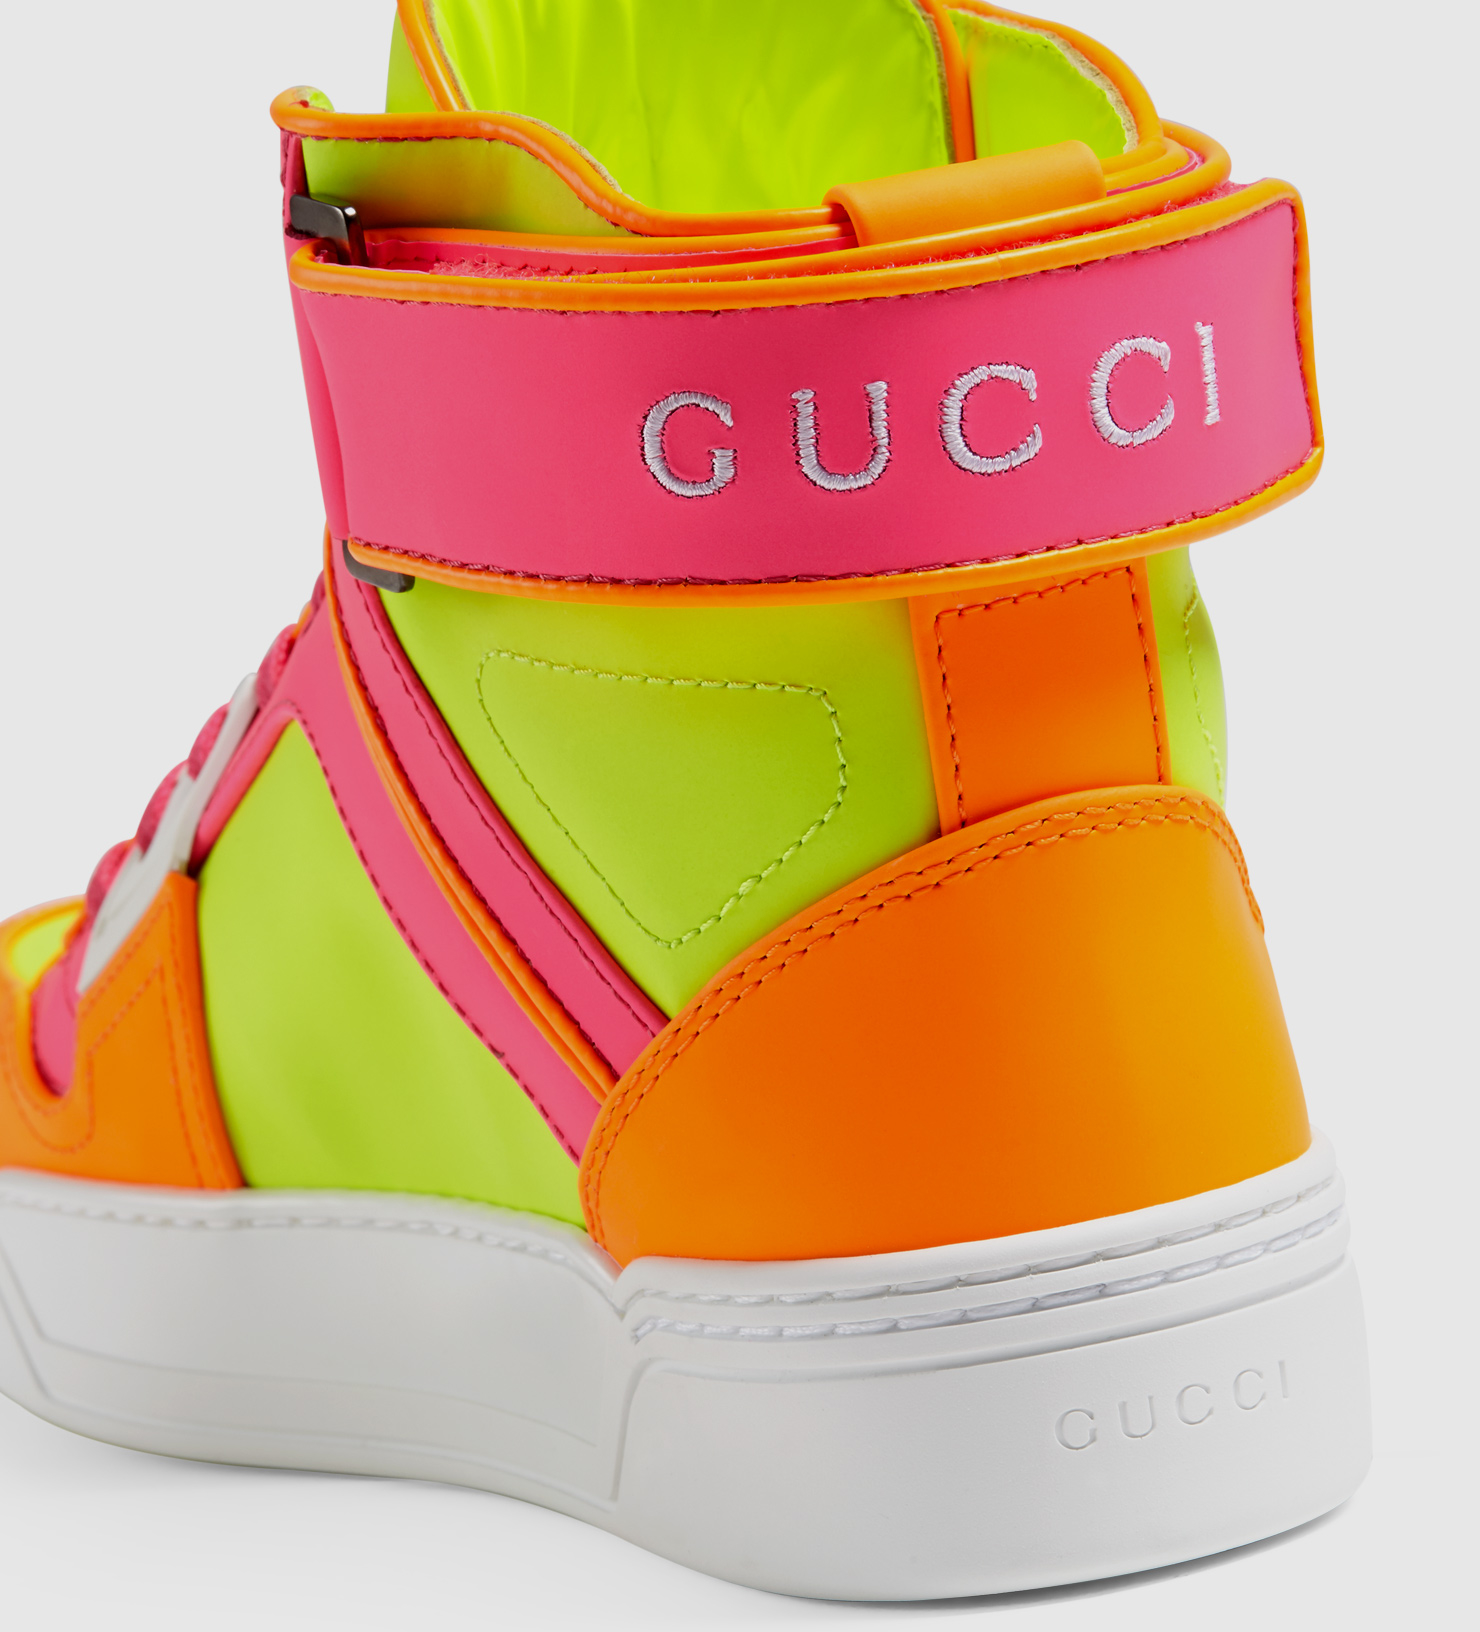 ce89bd6d9 Gucci New Basketball Neon Leather High-top Sneaker - Lyst